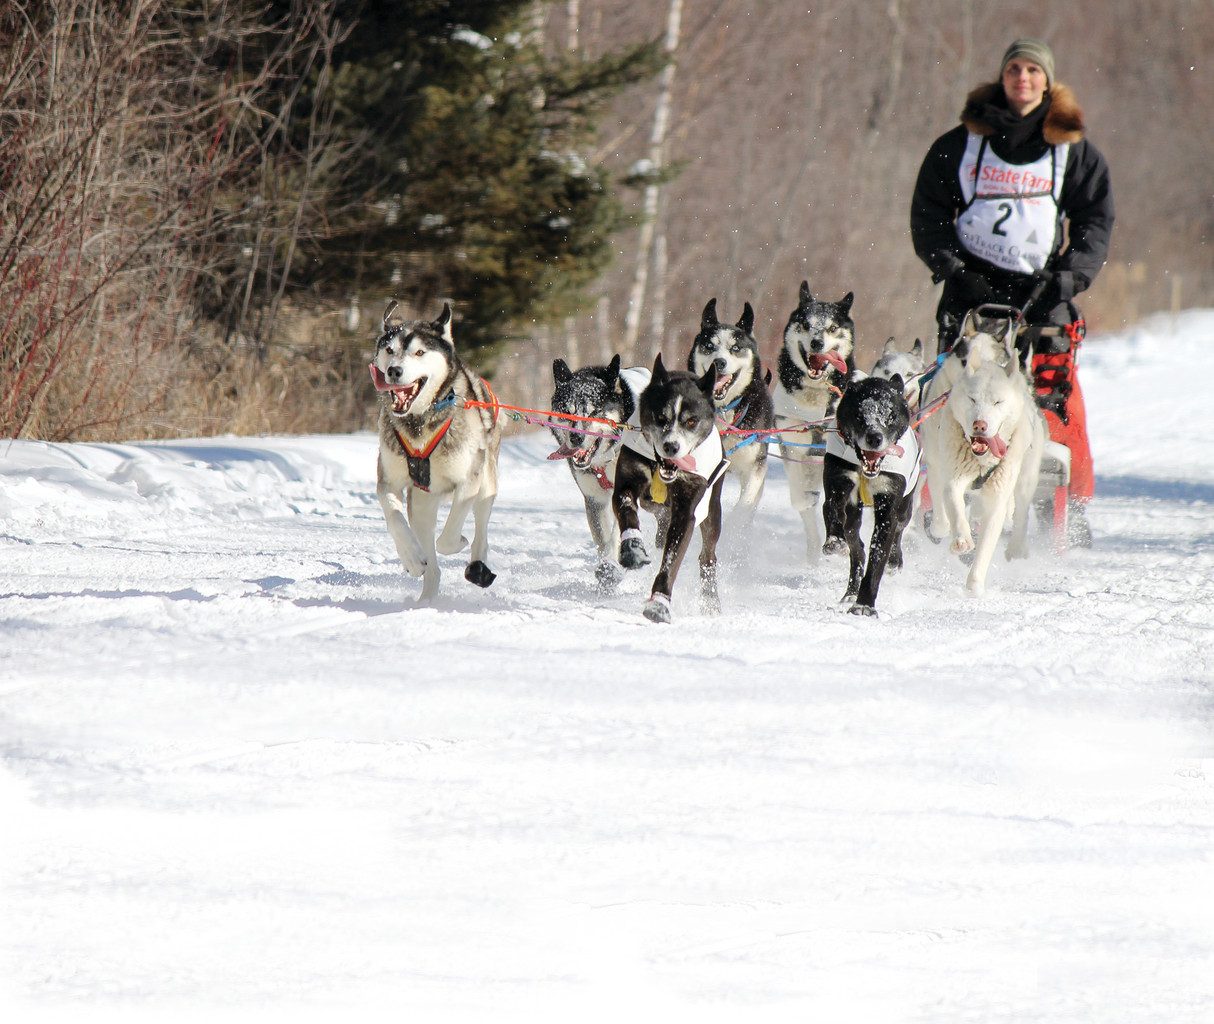 Jennifer Freking, of Finland,  won the 10-dog 60-mile WolfTrack Classic in six hours, 20 minutes.